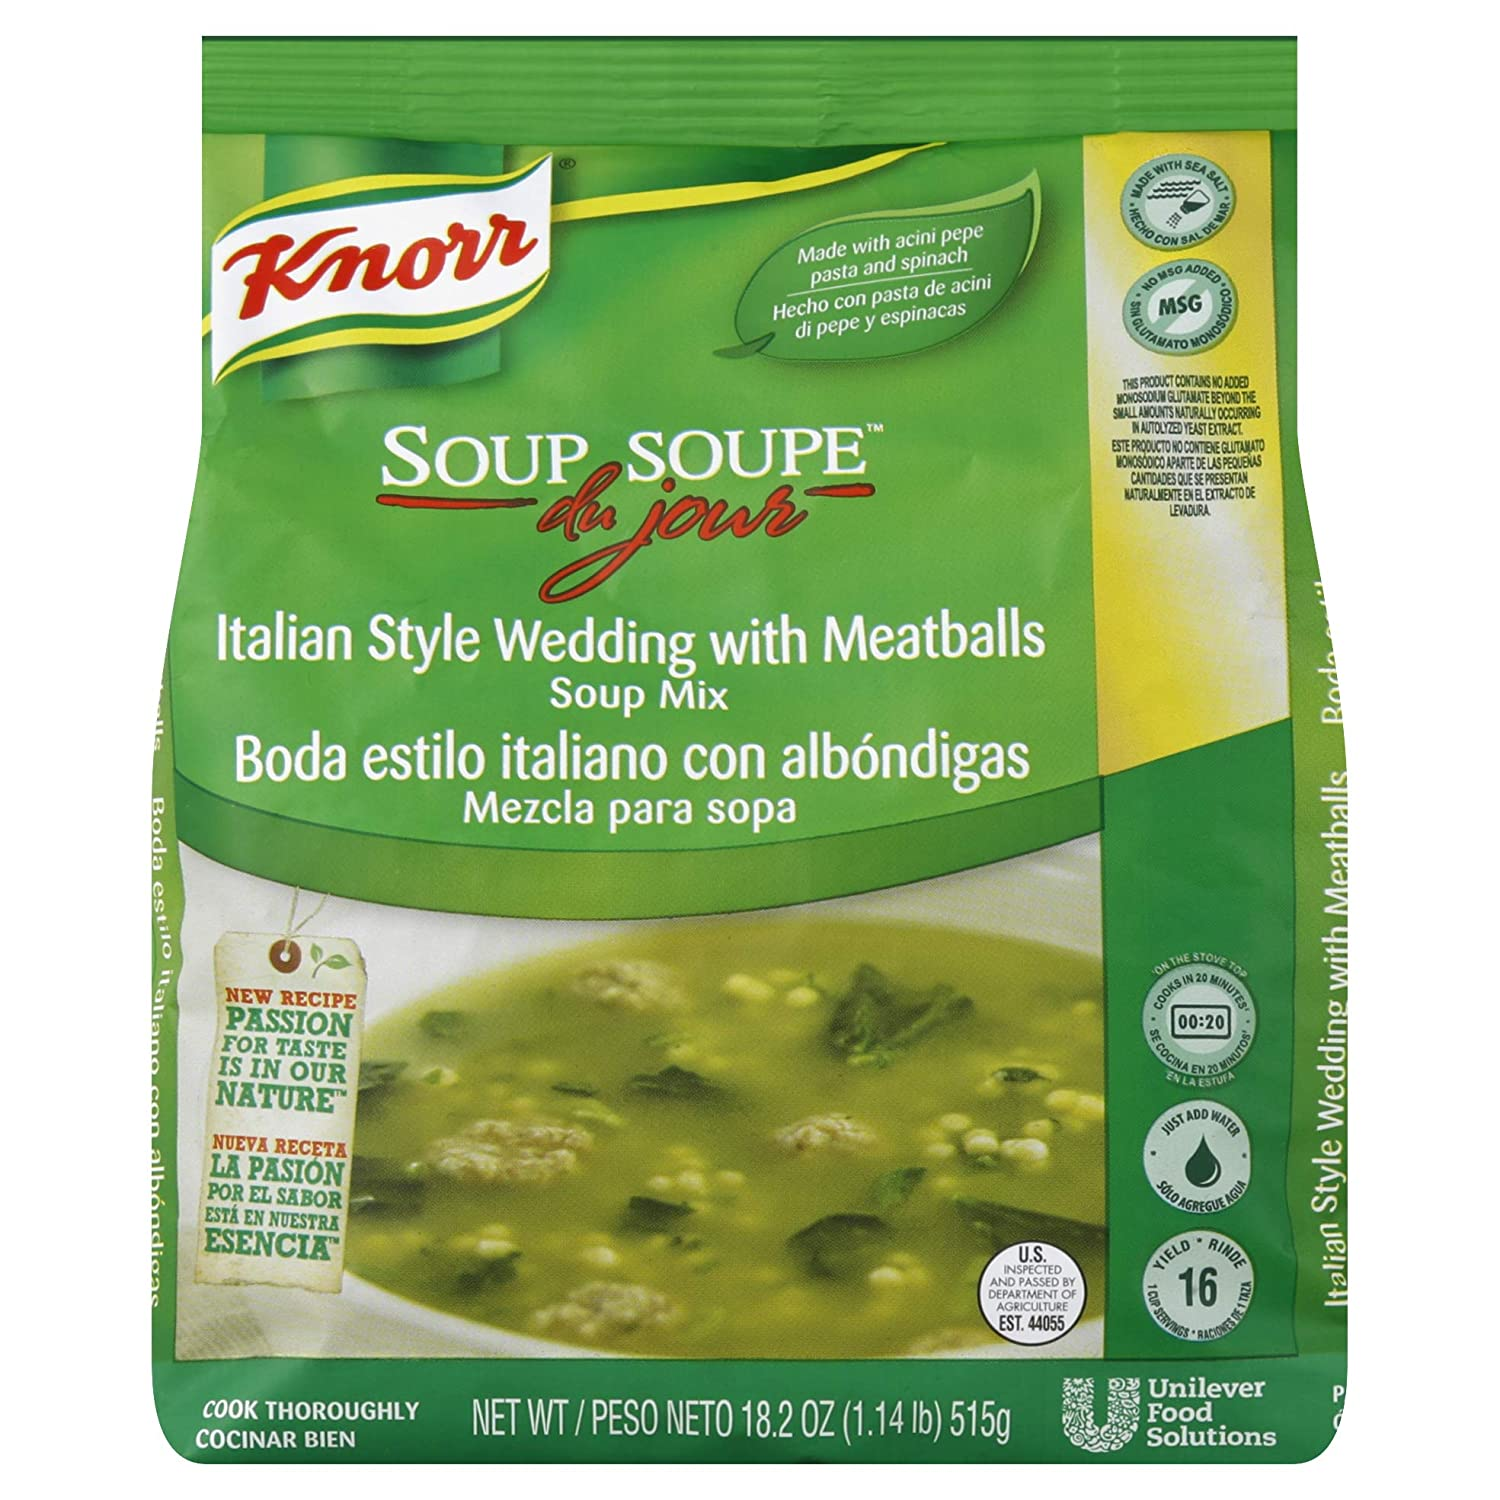 Amazon.com : Knorr Soup du Jour Mix Italian Style Wedding with Meatballs 18.2 oz, Pack of 4 : Grocery & Gourmet Food